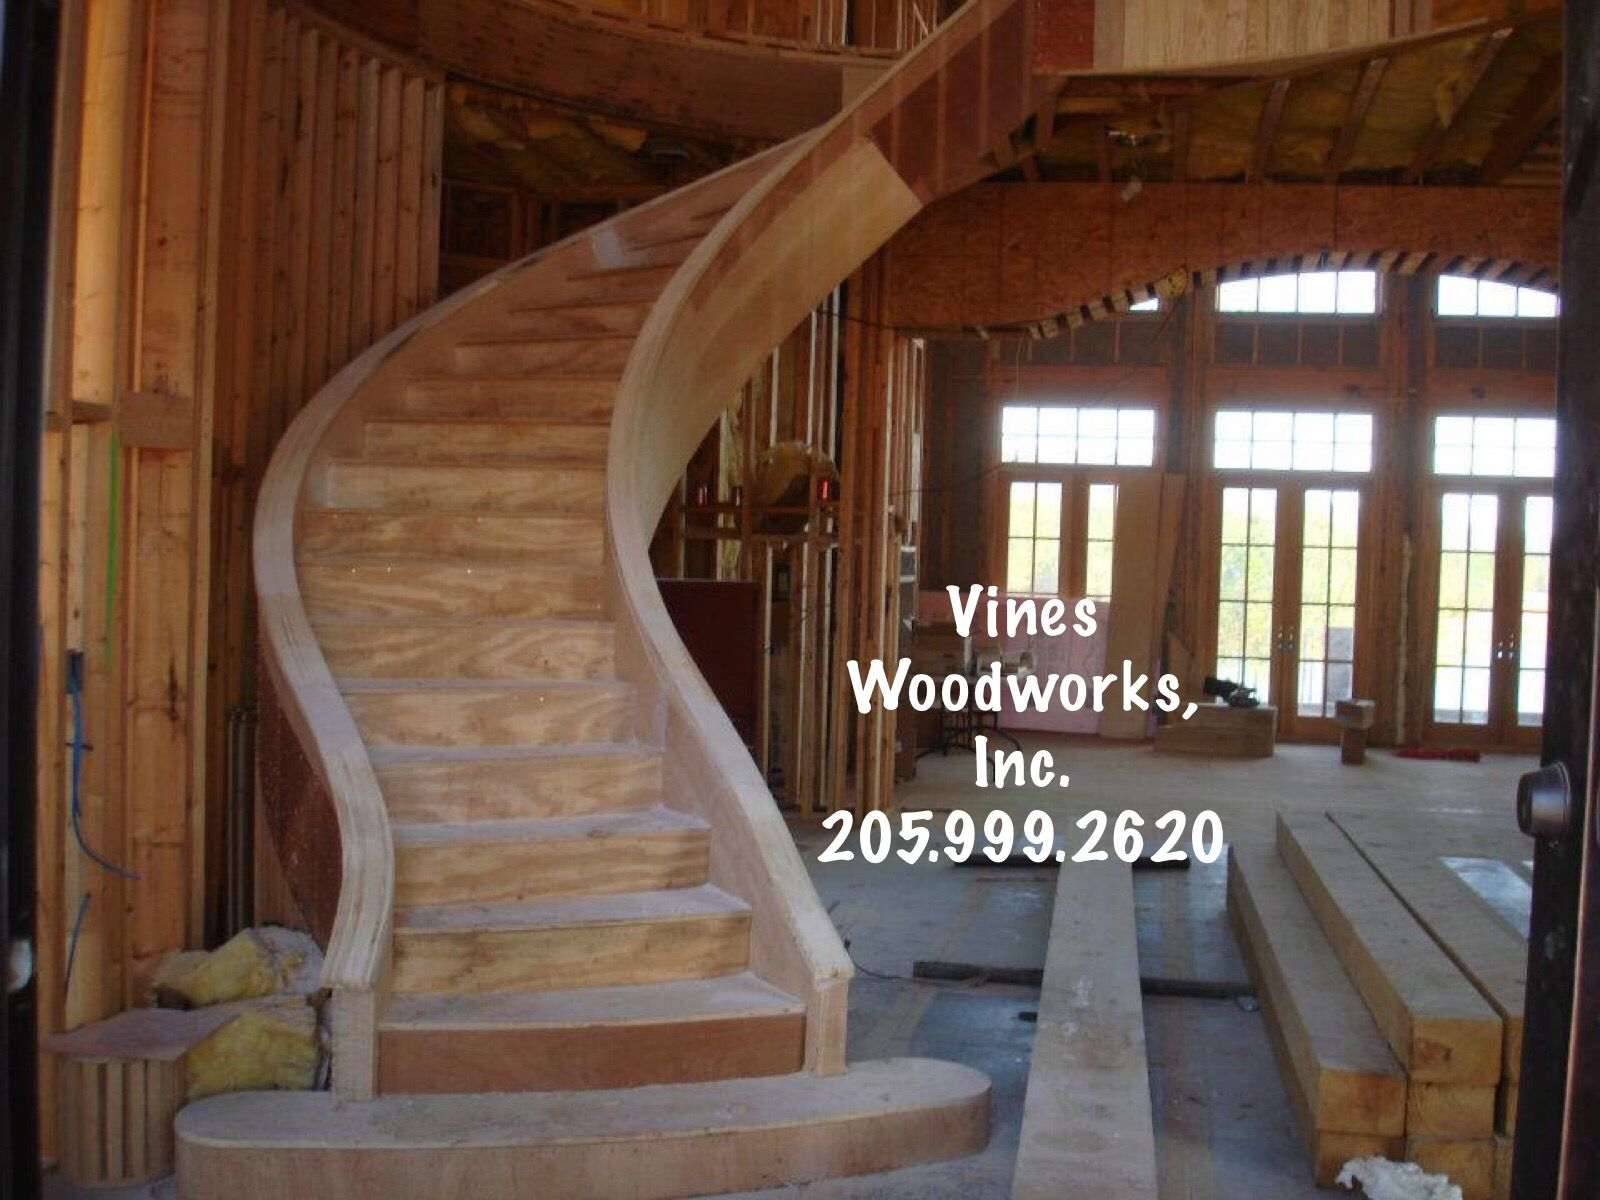 Captivating Vines Woodworks, Inc. Is A Turn Key Custom Stair Builder. We Specialize